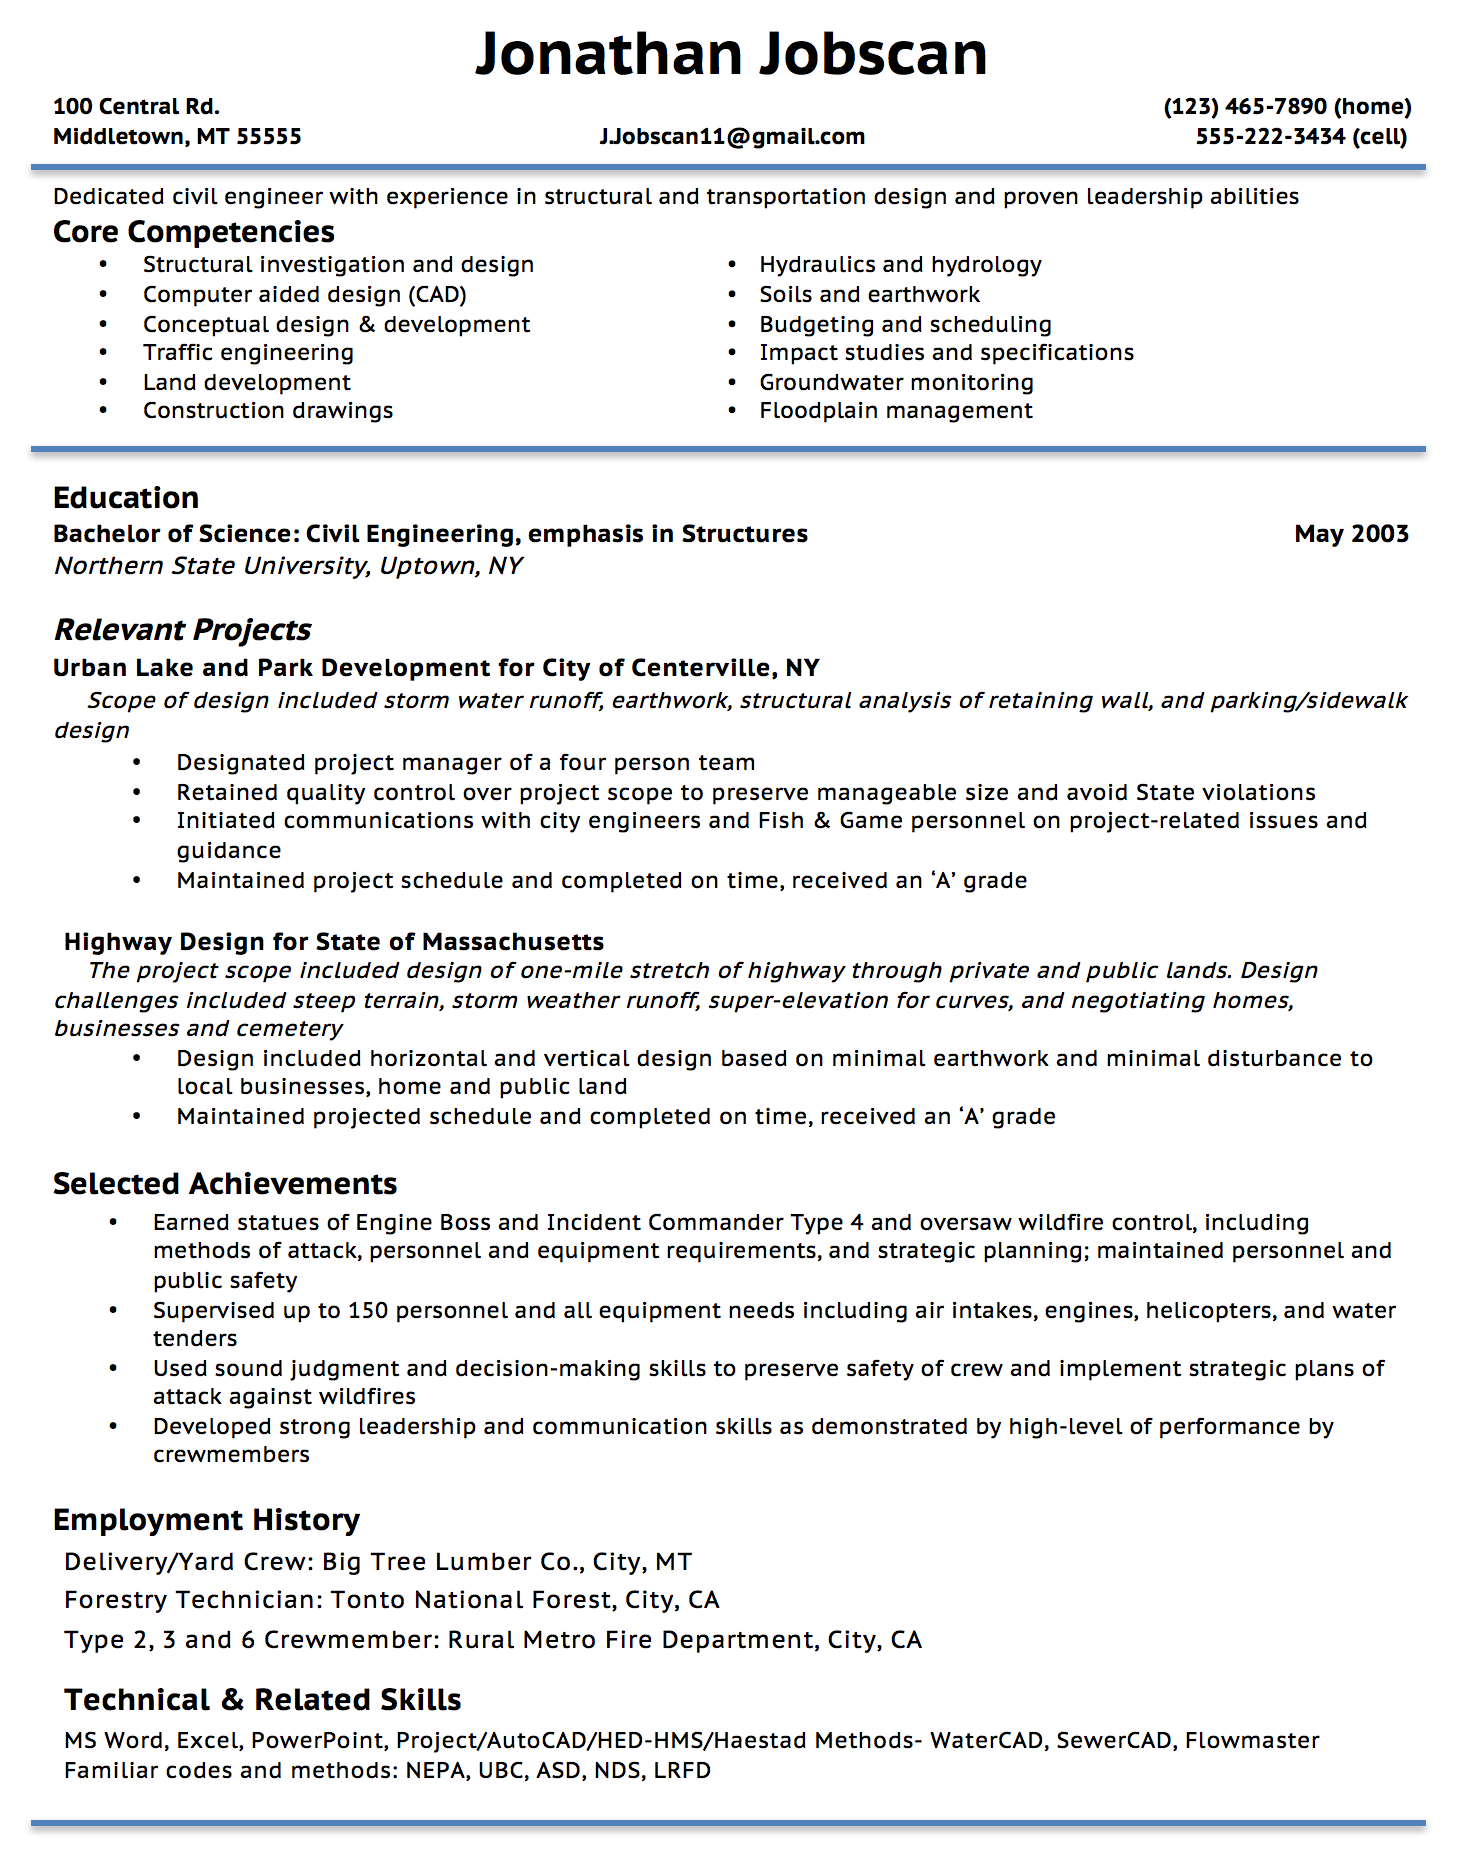 Opposenewapstandardsus  Terrific Resume Writing Guide  Jobscan With Inspiring Example Of A Functional Resume Format With Agreeable Sorority Recruitment Resume Also Resume Writer Jobs In Addition Entry Level Cna Resume And Dance Resumes As Well As Resume Examples Objectives Additionally Experience Resume Examples From Jobscanco With Opposenewapstandardsus  Inspiring Resume Writing Guide  Jobscan With Agreeable Example Of A Functional Resume Format And Terrific Sorority Recruitment Resume Also Resume Writer Jobs In Addition Entry Level Cna Resume From Jobscanco